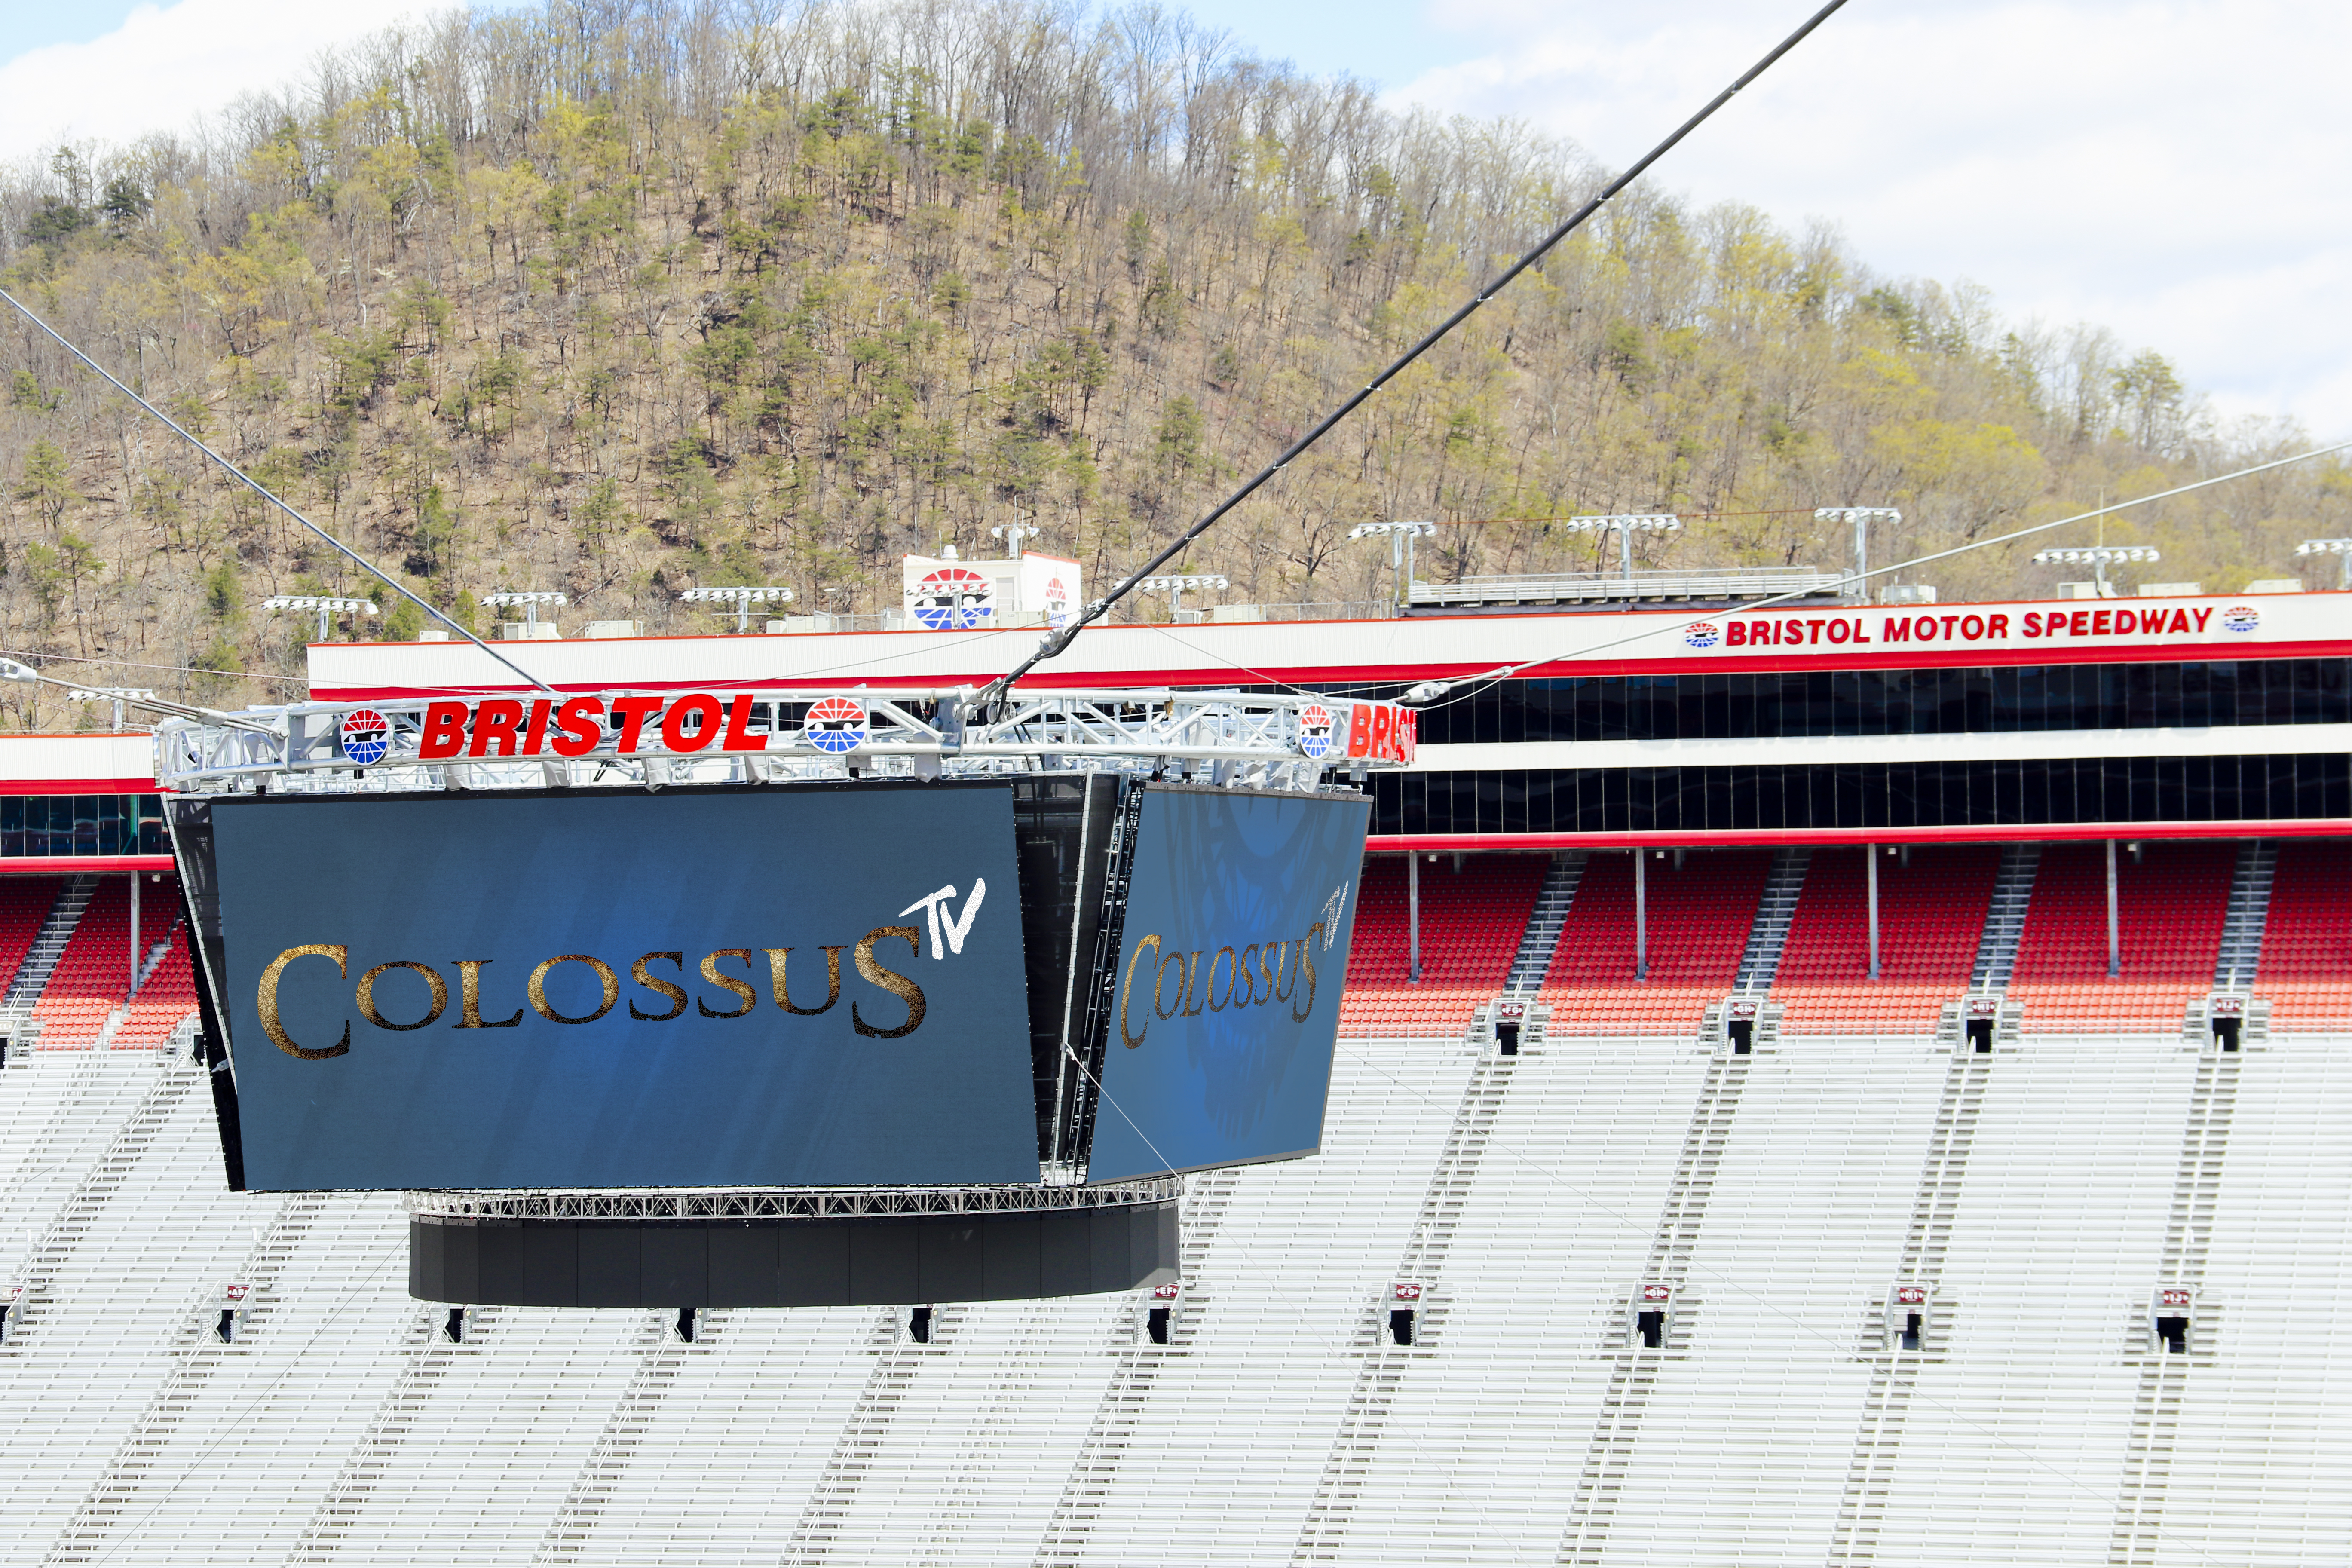 Bristol Motor Speedway's Colossus TV Coming to Life for Food City 500 Race Weekend | Business Wire